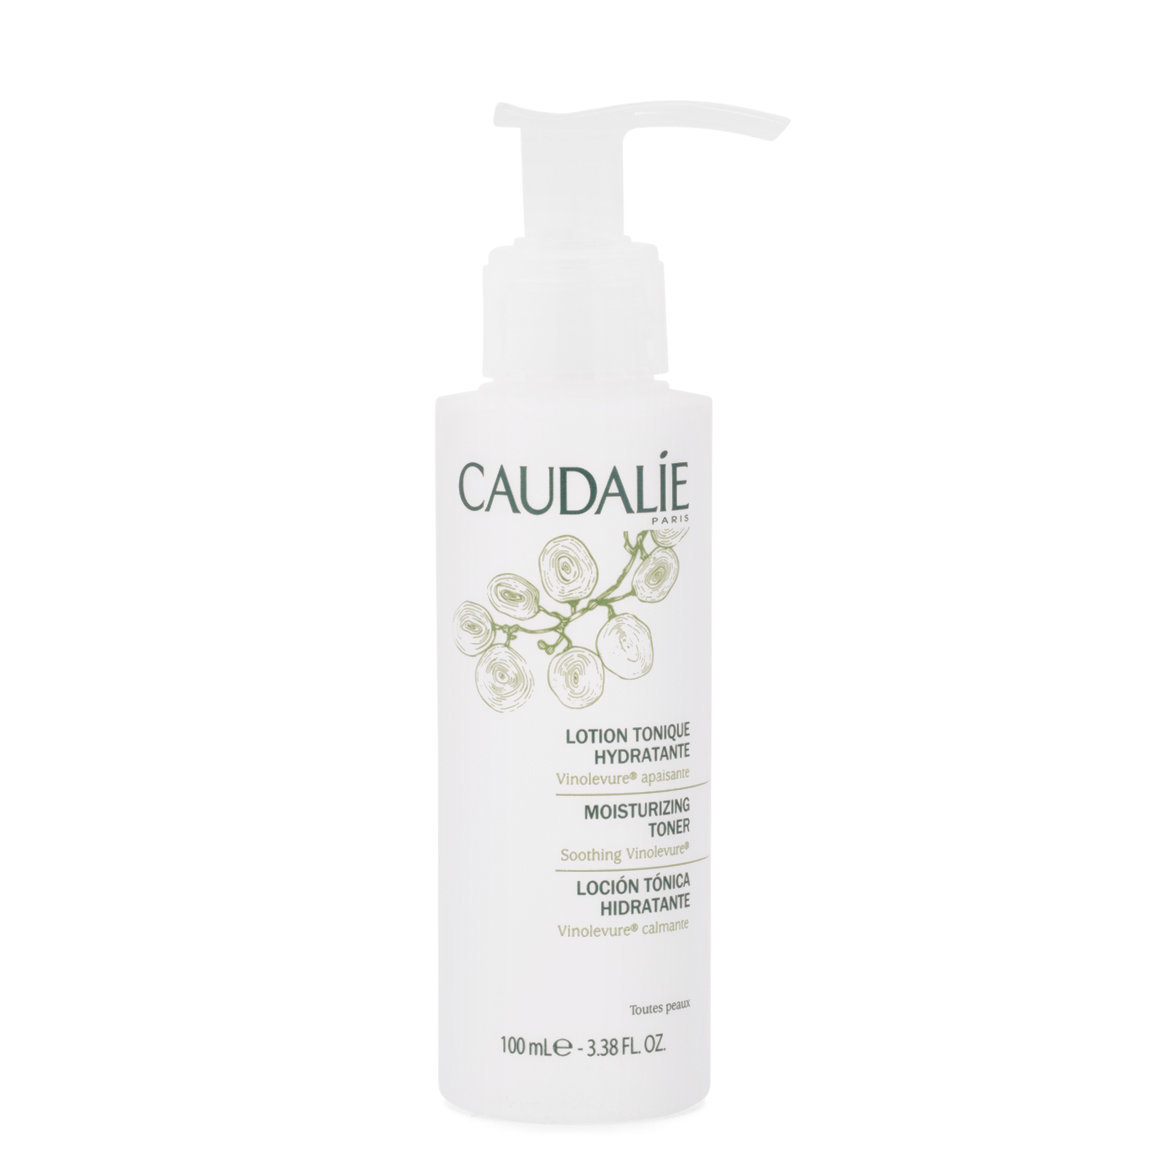 Caudalie Moisturizing Toning Lotion 100 ml alternative view 1 - product swatch.